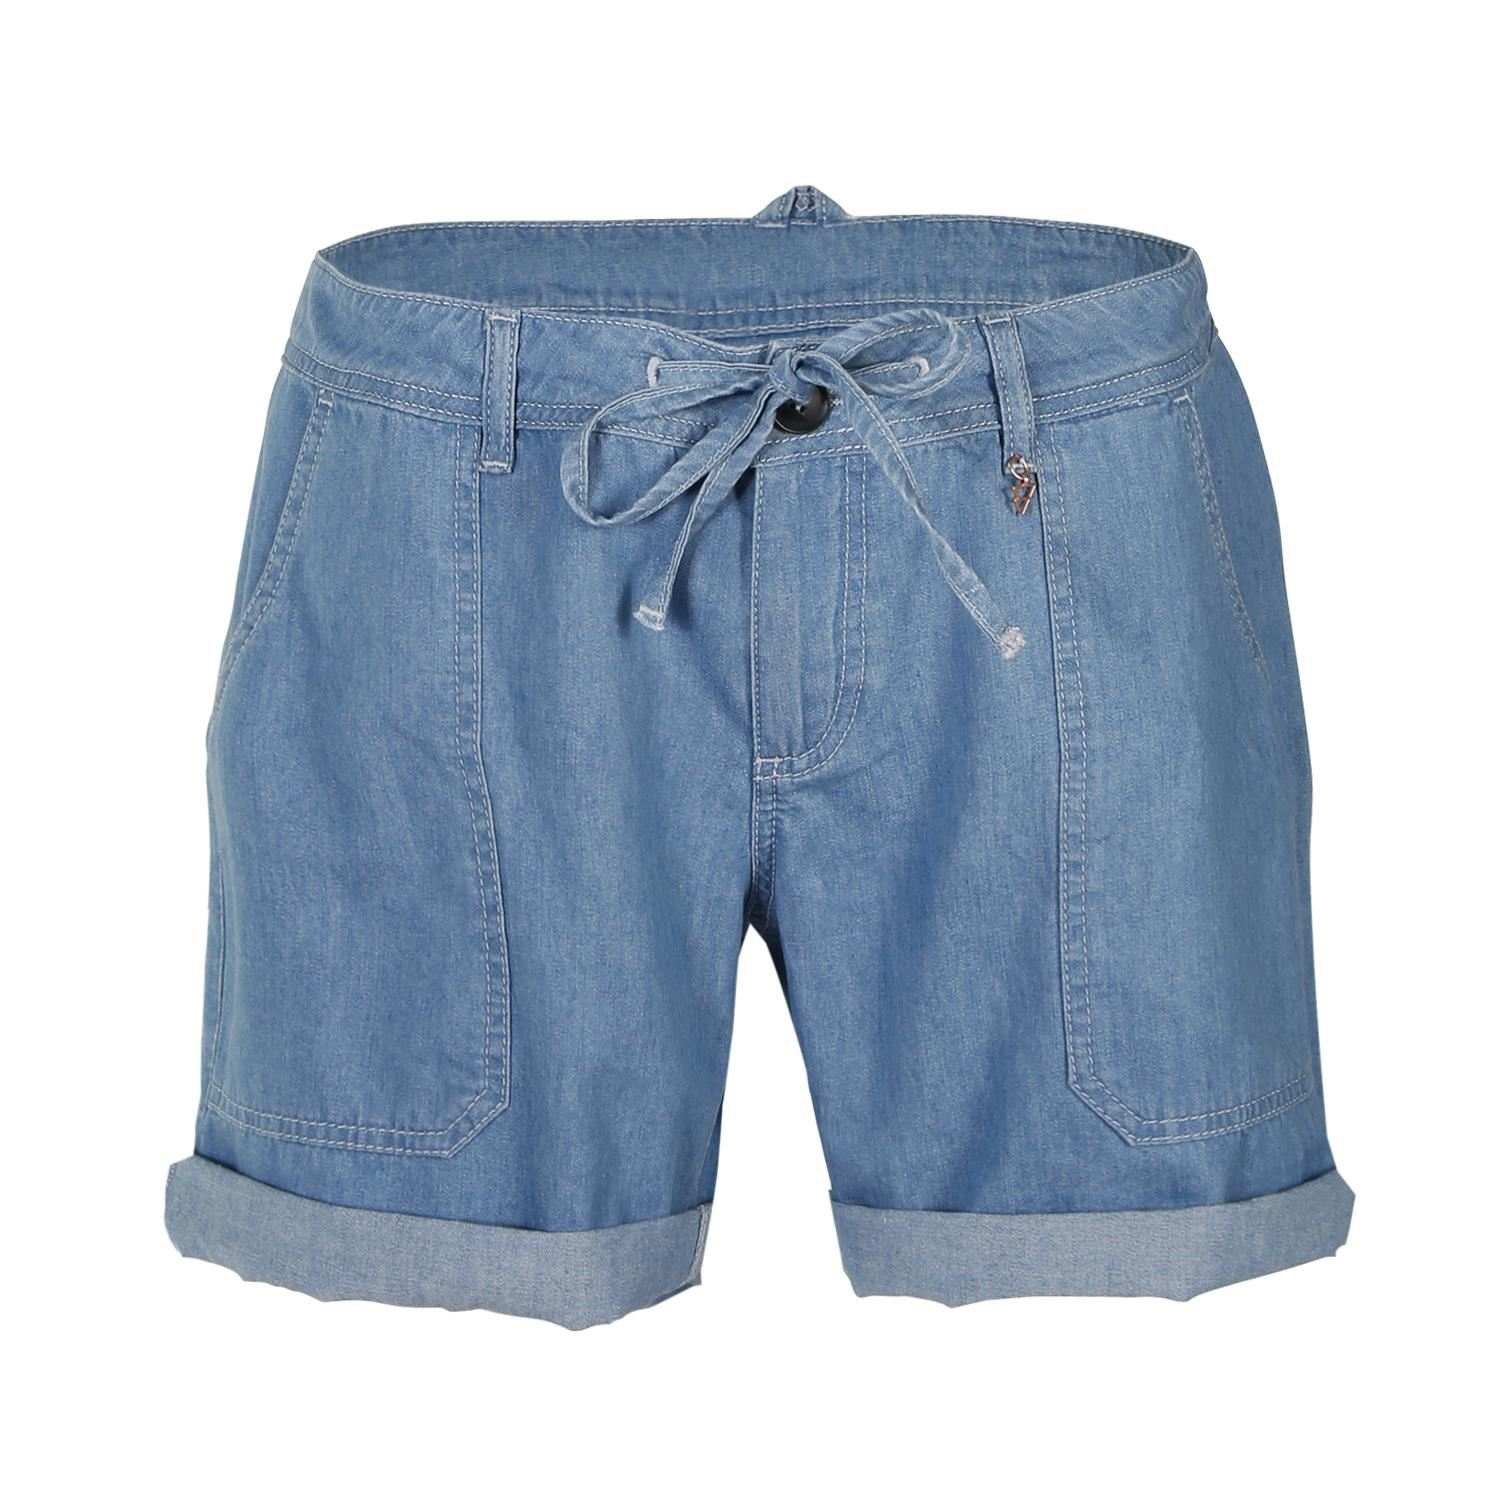 Brunotti Kaleah  (blue) - women casual shorts - Brunotti online shop